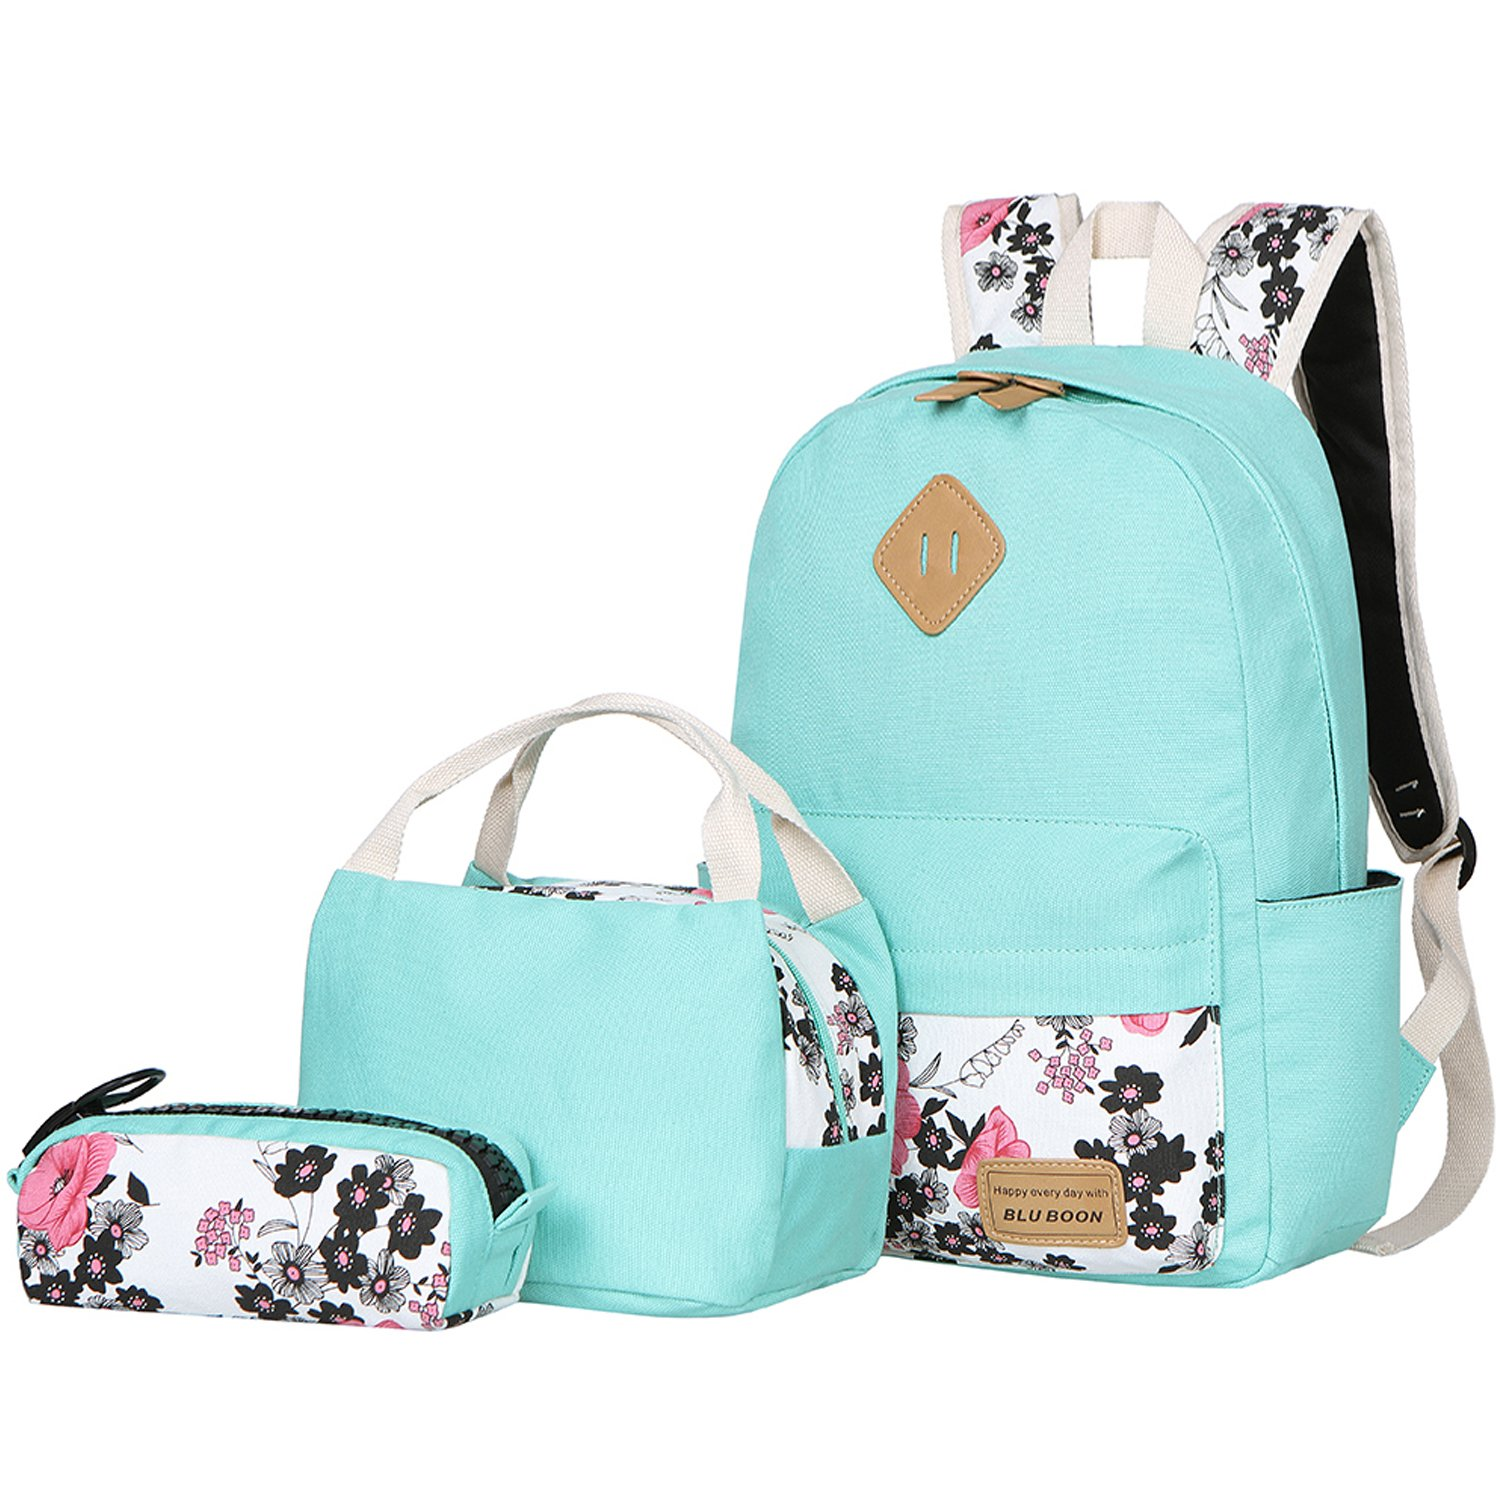 6e0f07ac9463 Details about BLUBOON Teens Backpack Set Canvas Girls School Bags, Bookbags  3 in 1 (Water